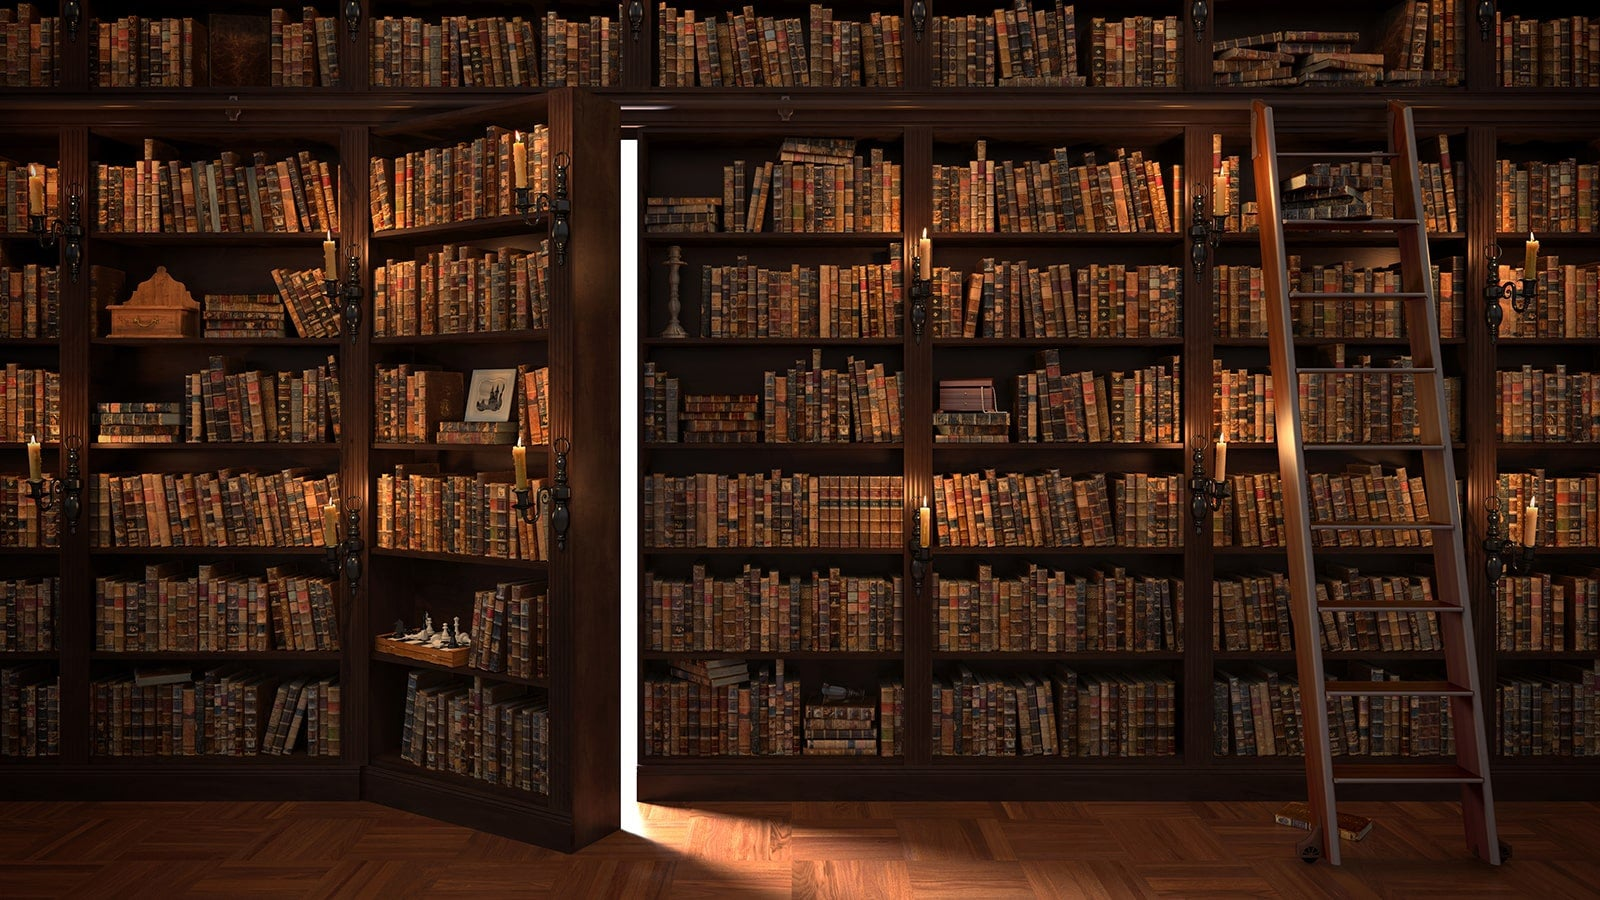 Library with old books, ladder and secret door